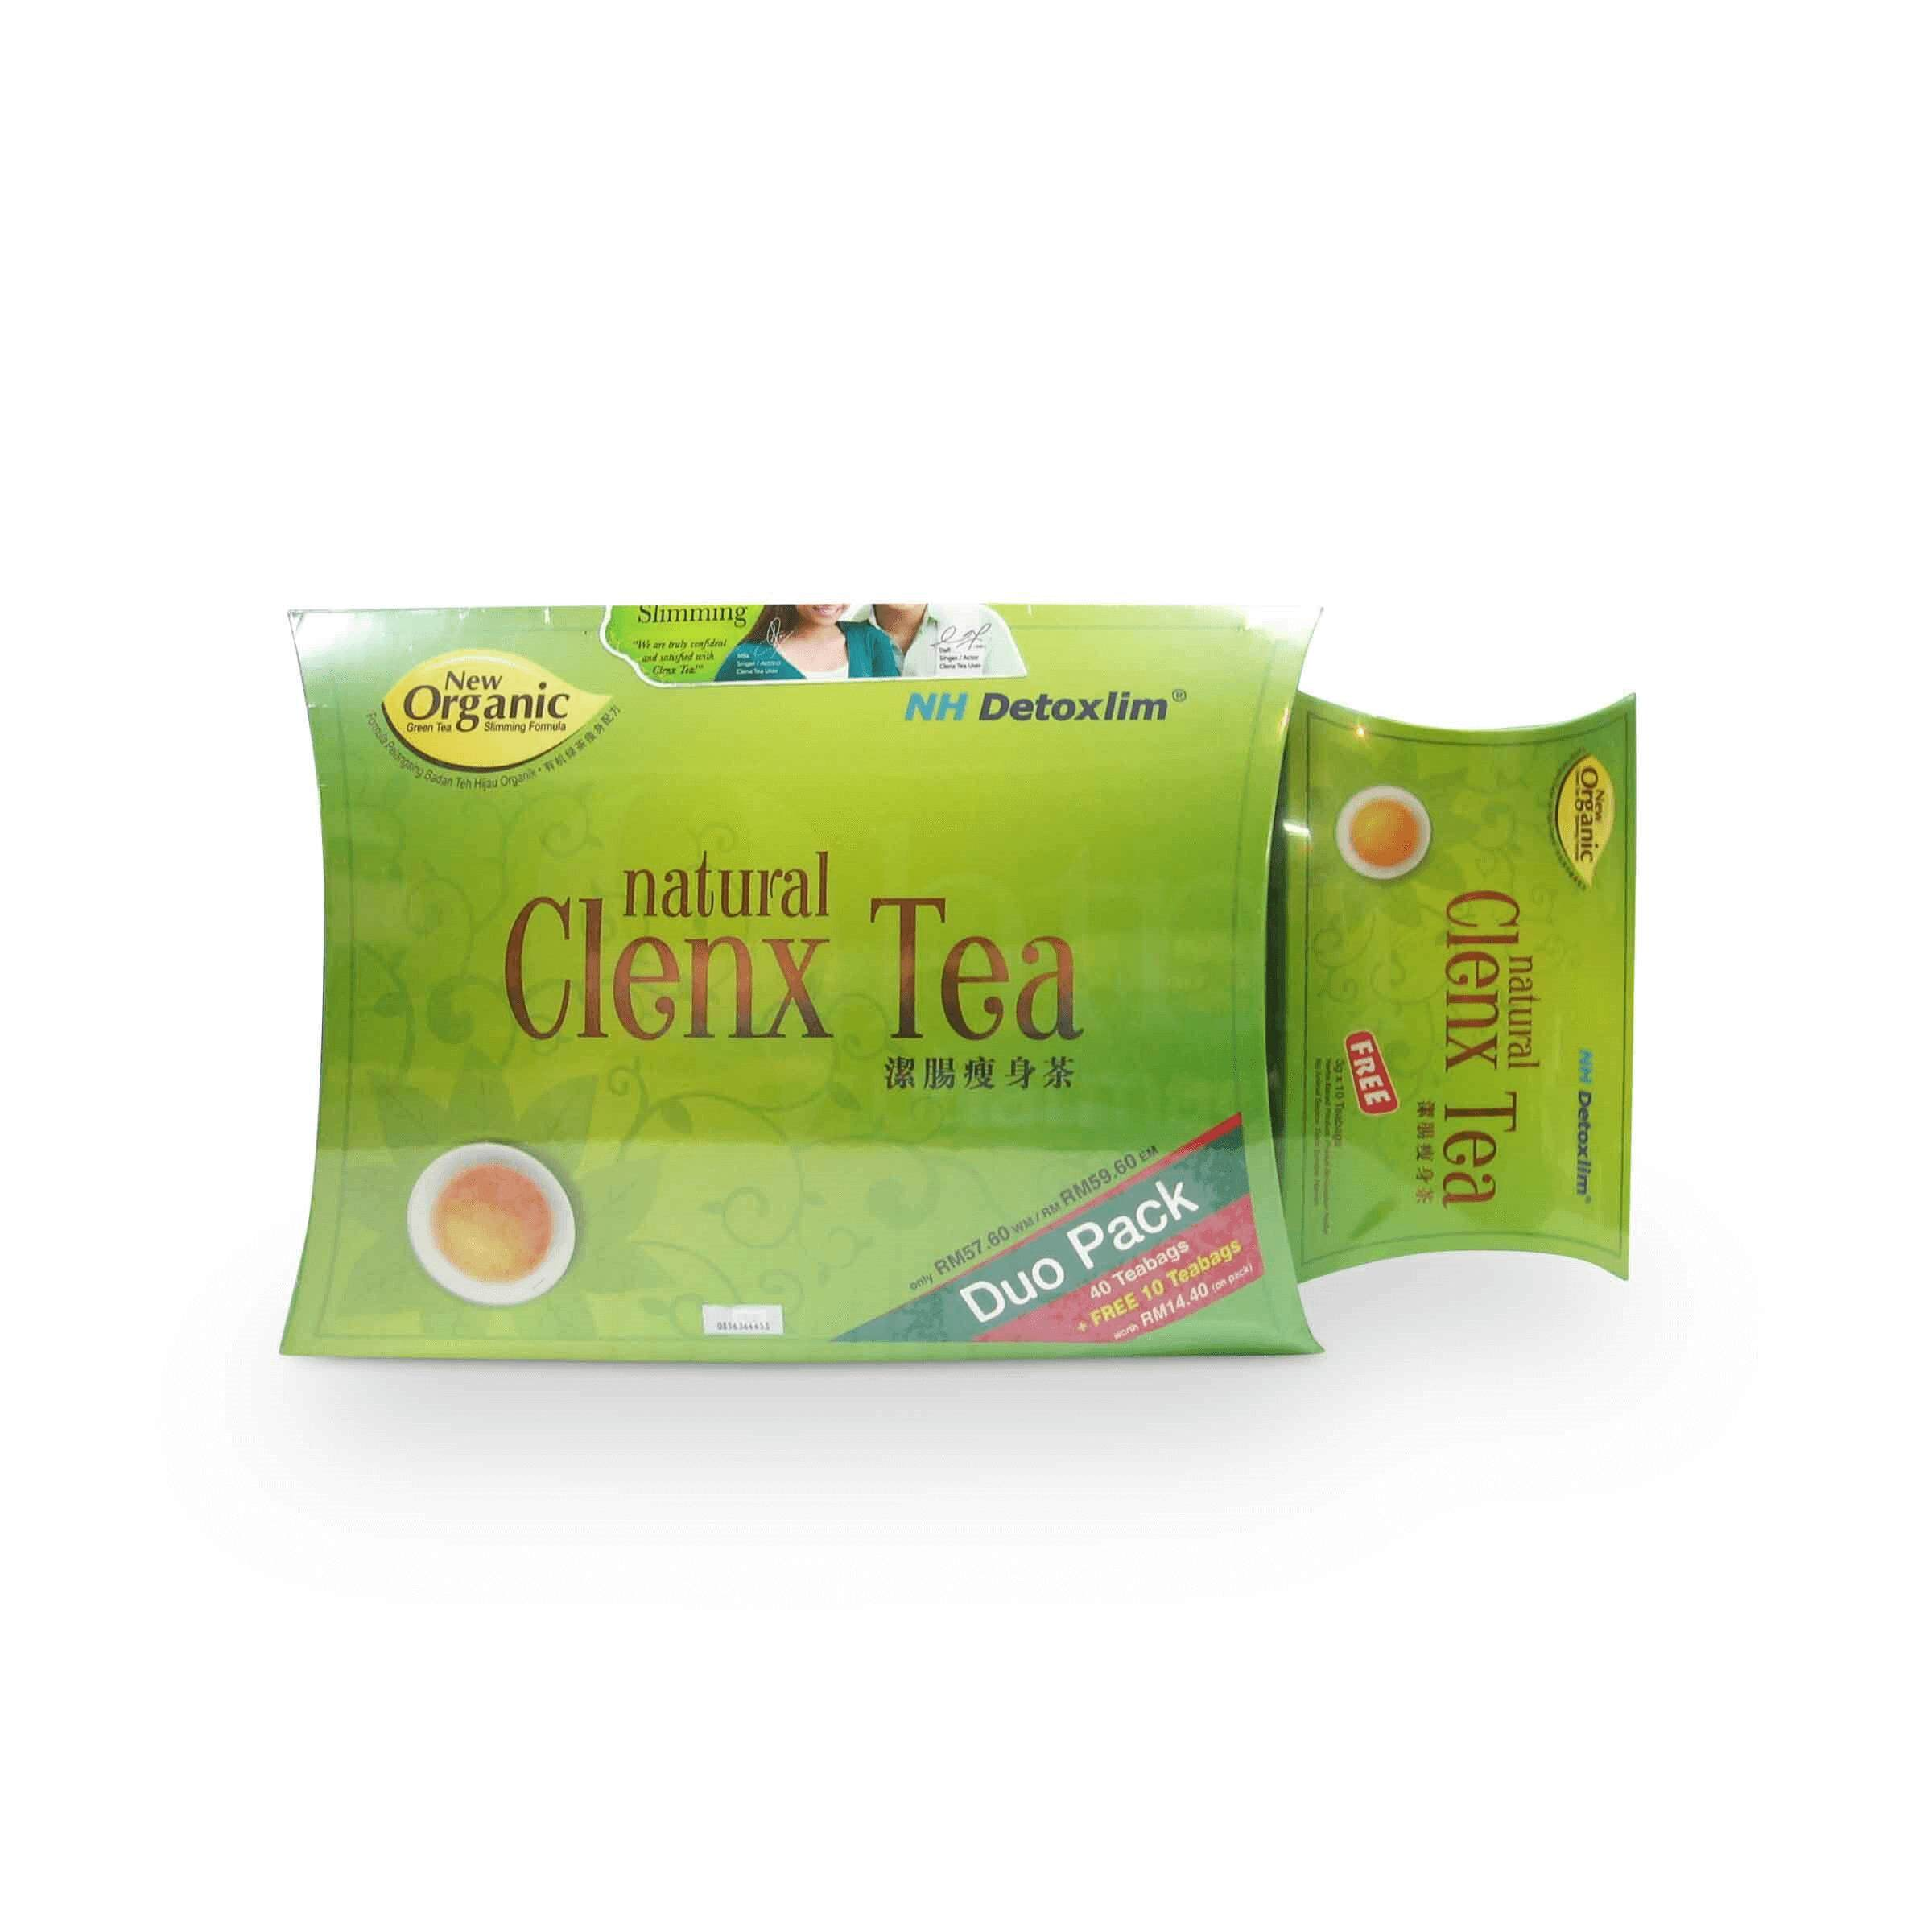 NH Natural Clenx Tea Duo Pack 3g x ( 40's + 15's ( PROMO PACK )